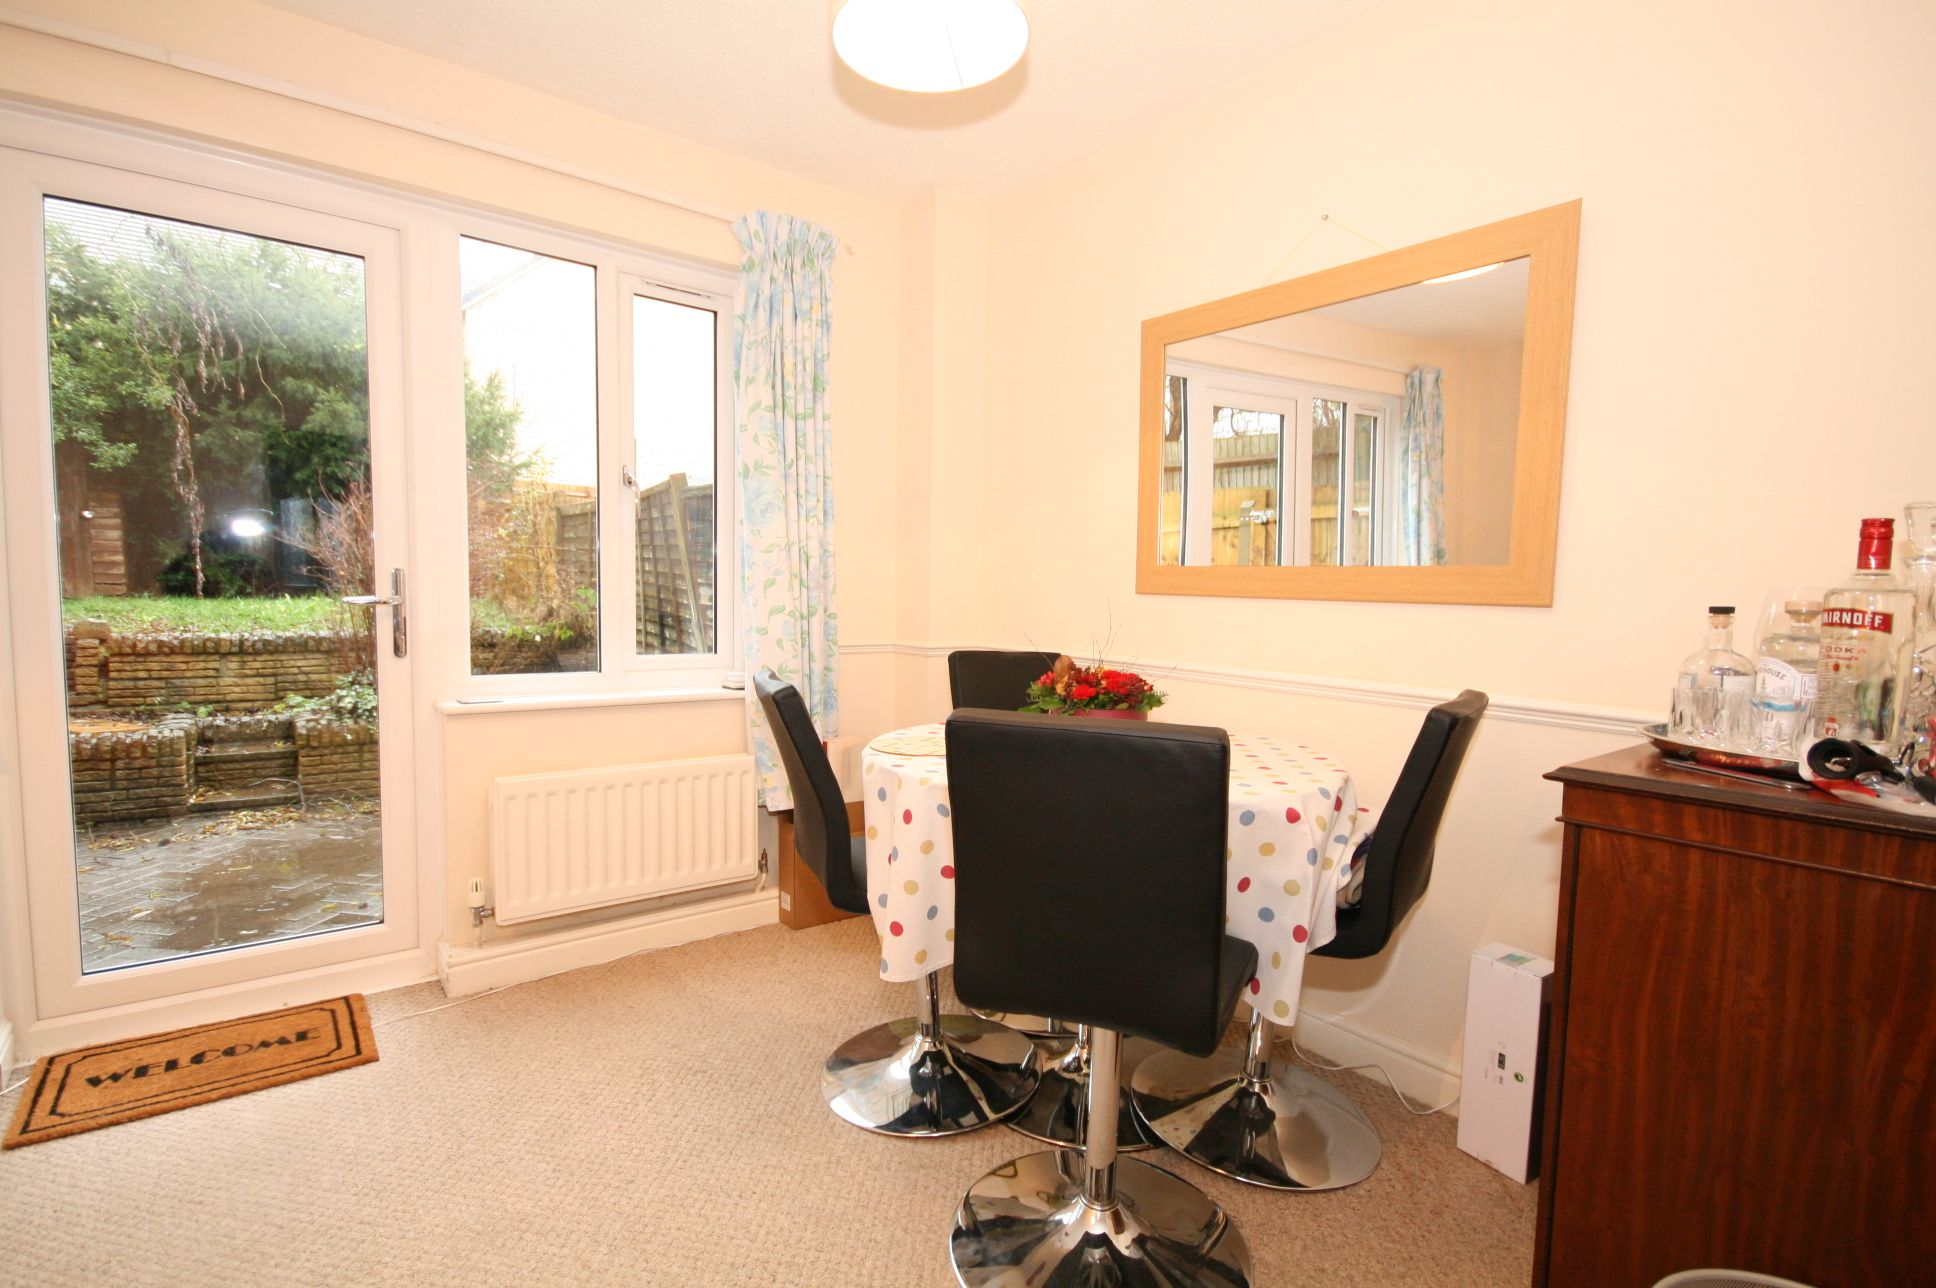 2 Bedroom End Terraced House For Sale - Dining area